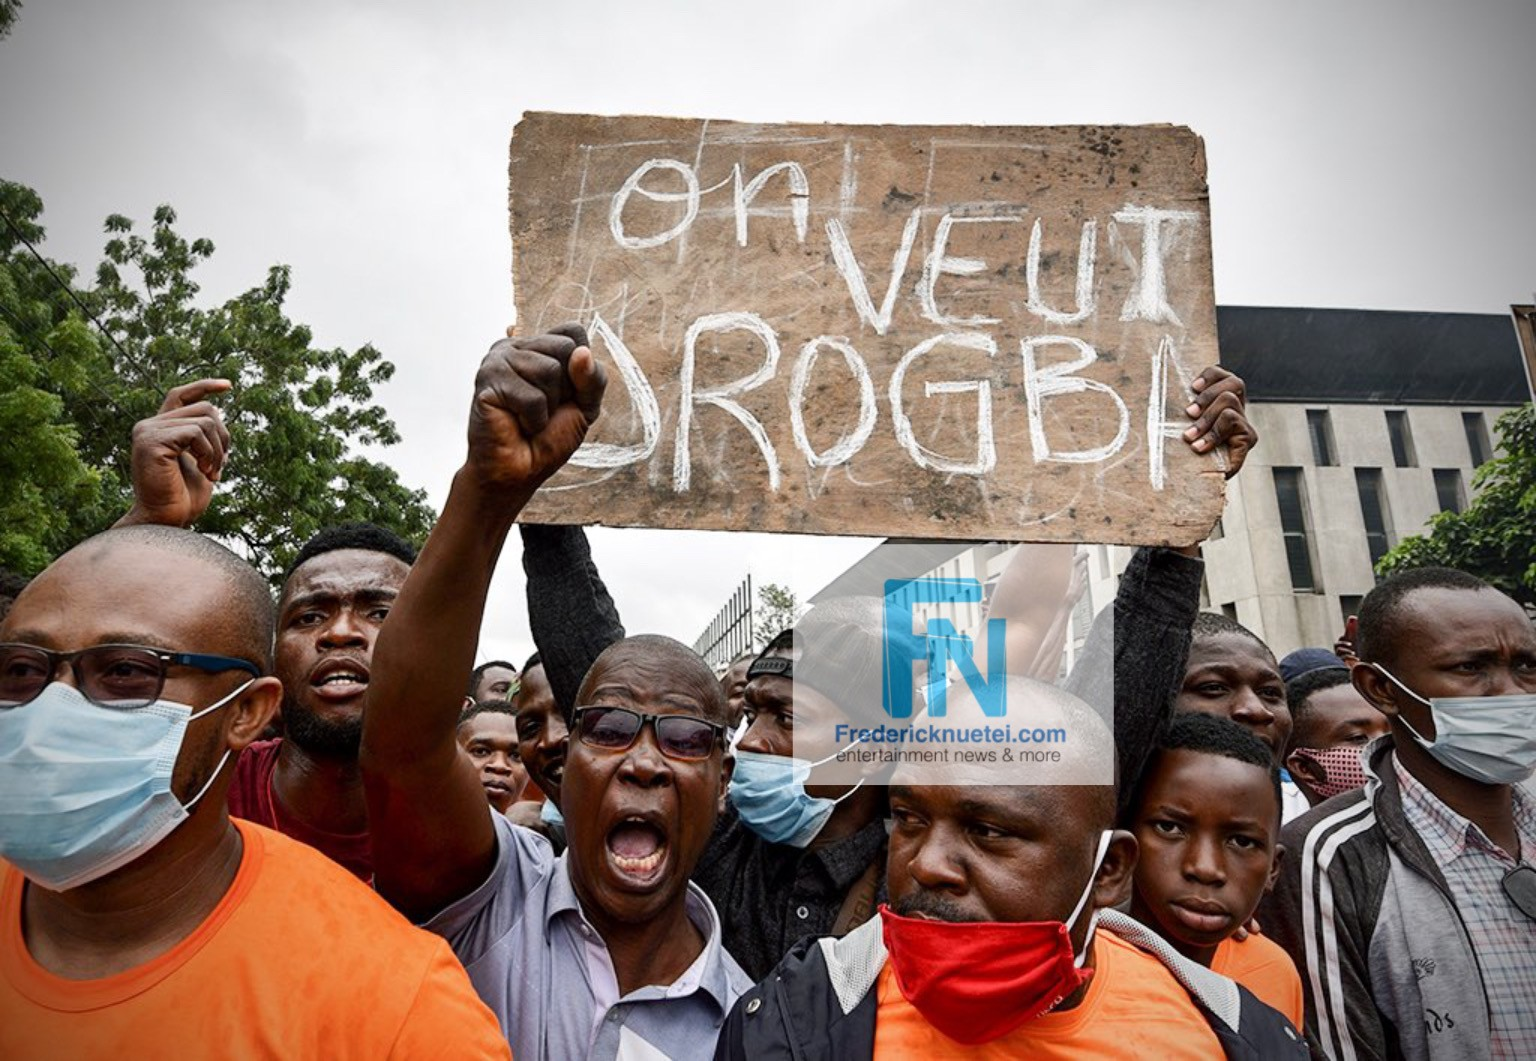 Didier Drogba Fans Troop Out To Support His Bid To Run For President Of The Ivorian Football Association